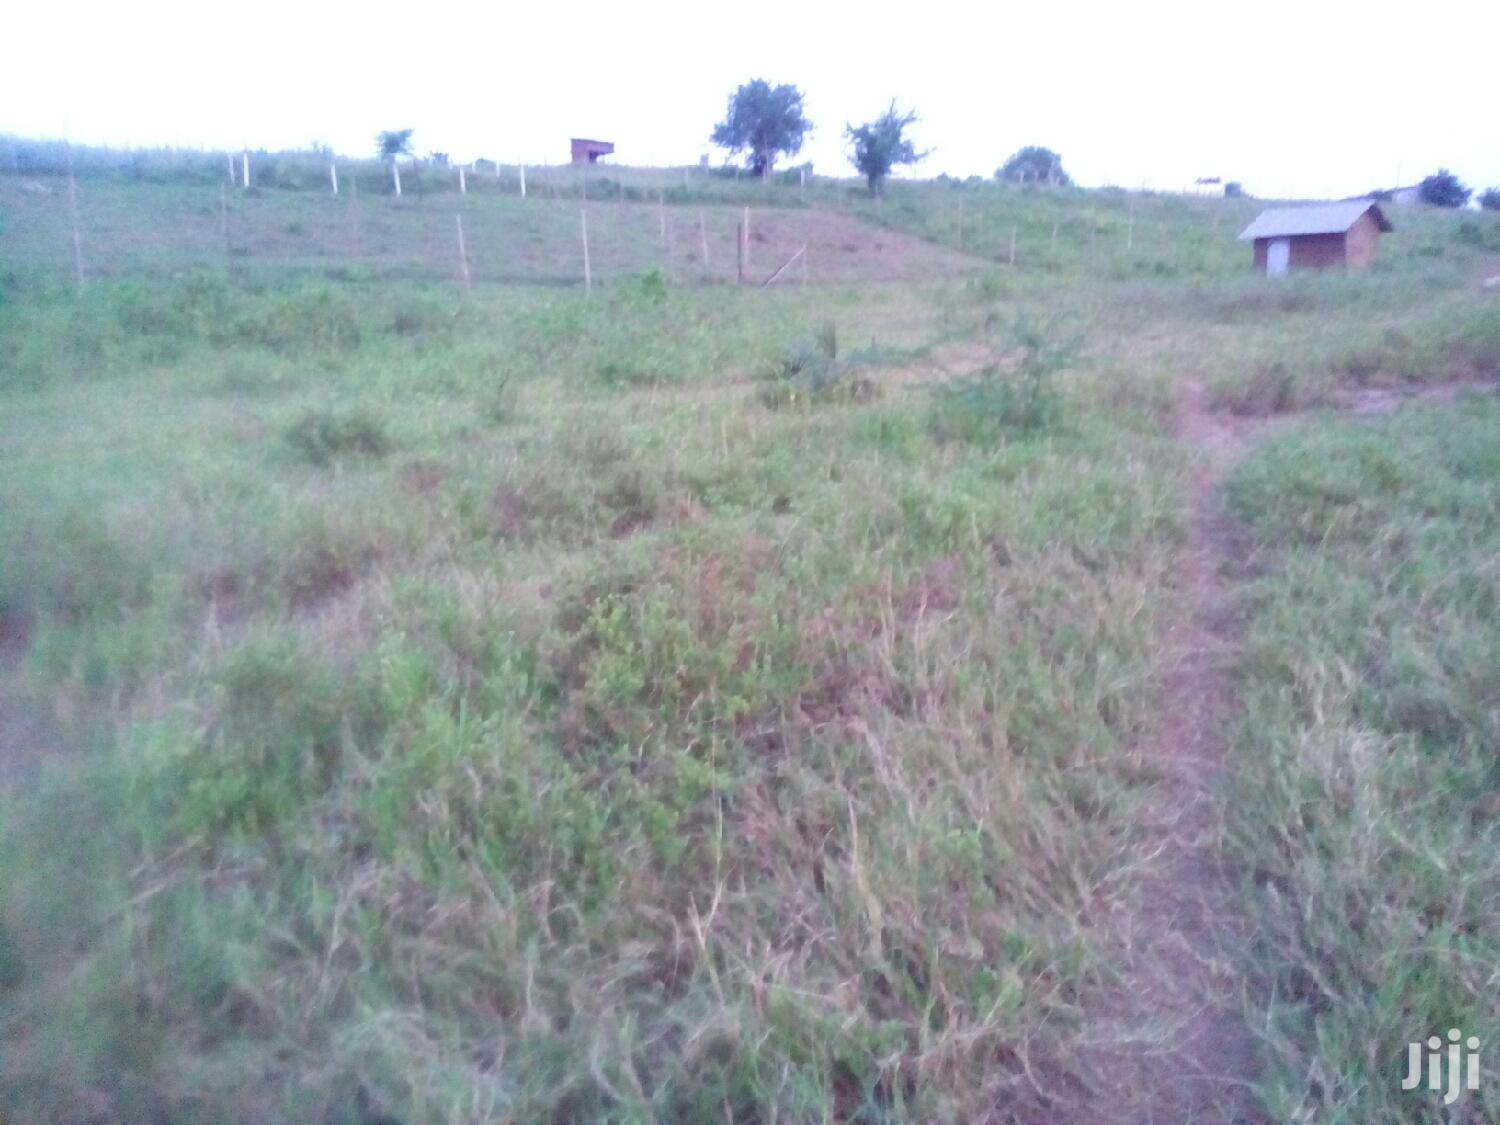 42X60 Plots For Sale In Alidina Jomvu | Land & Plots For Sale for sale in Jomvu, Mombasa, Kenya